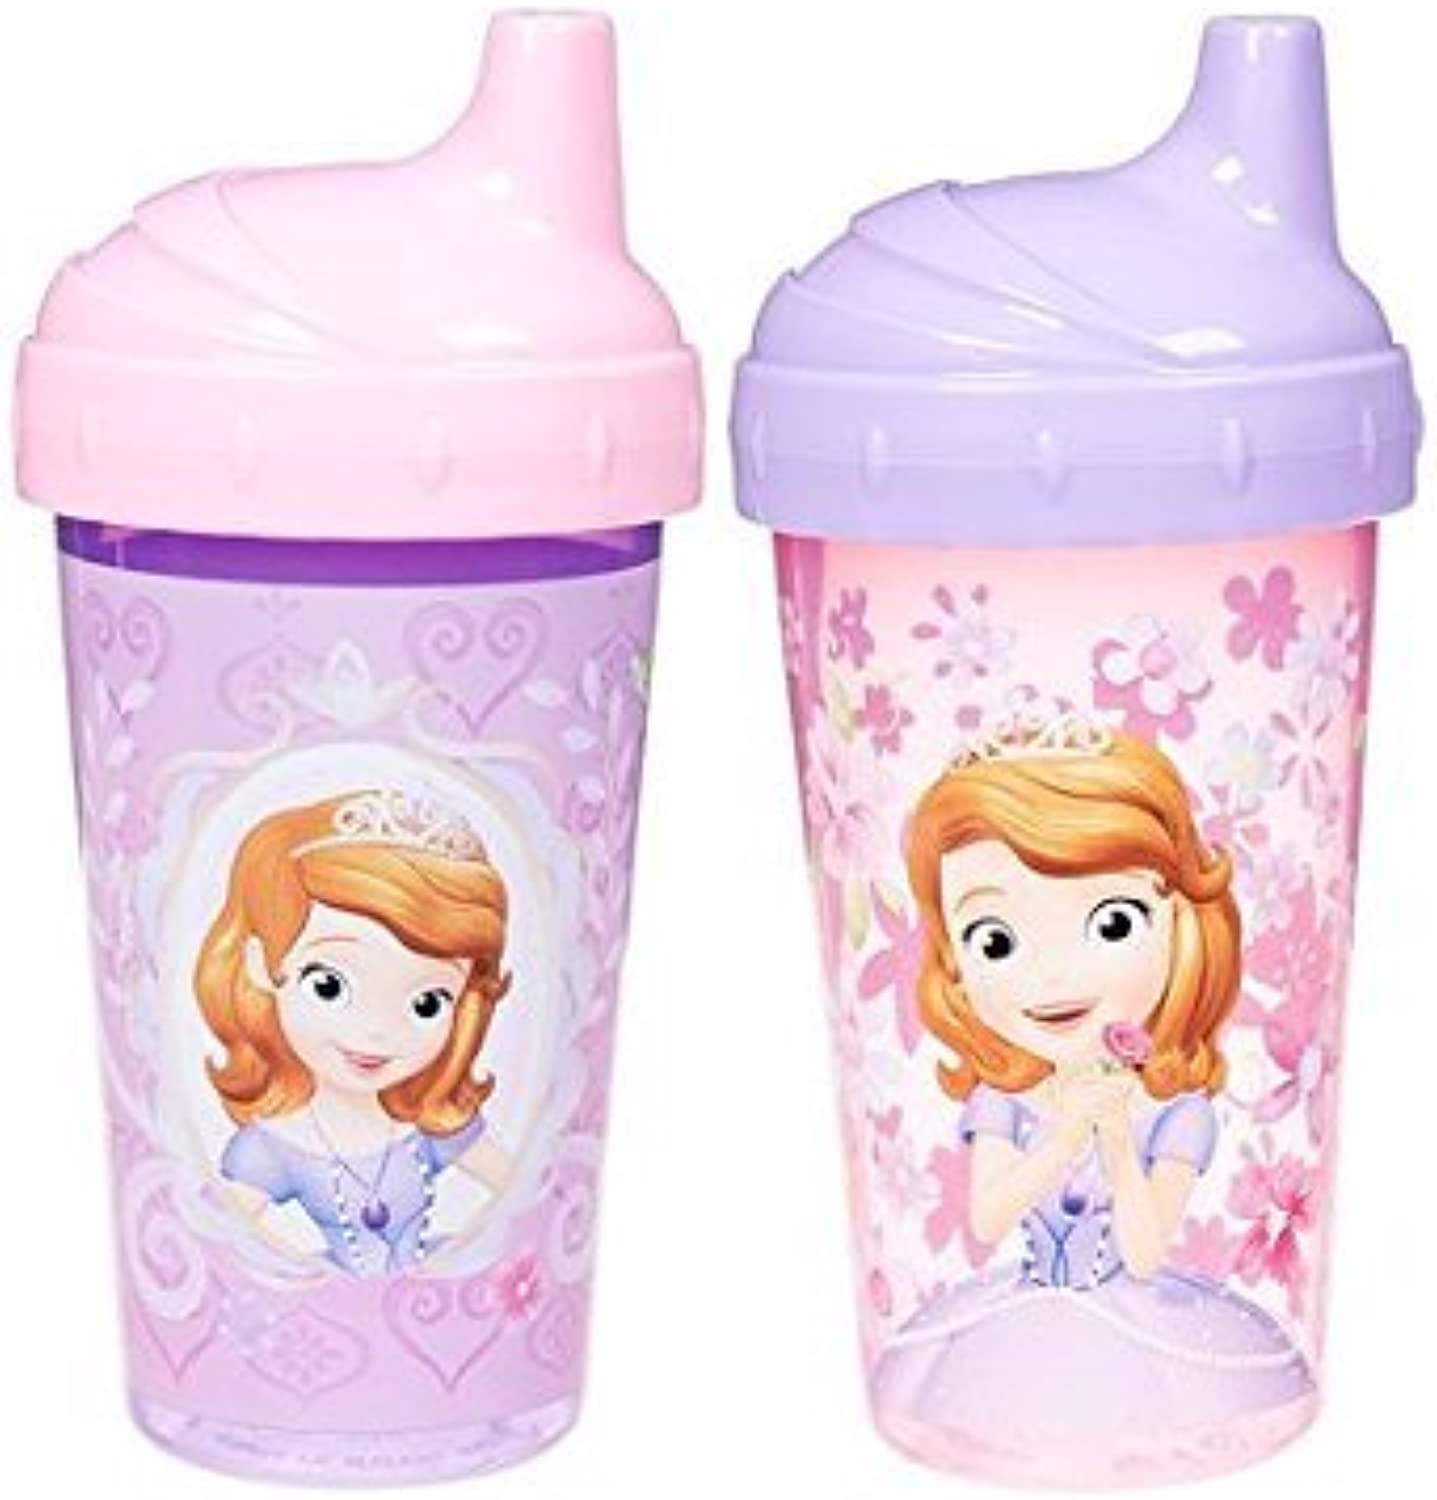 HuSuper Disney Sofia The First Sippy Cups